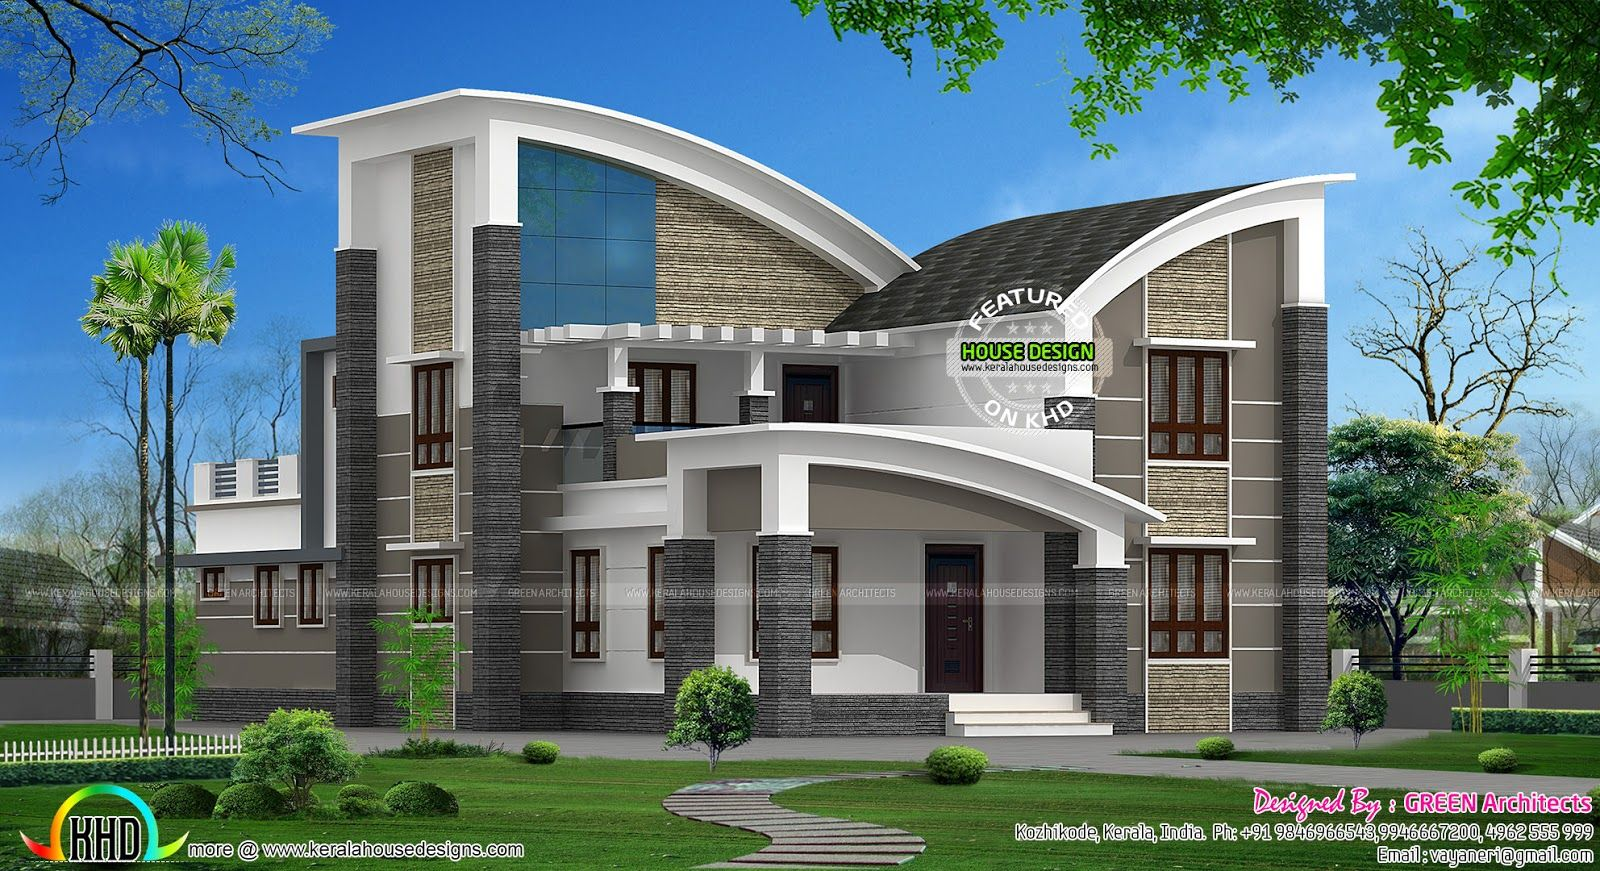 Modern style curved roof villa home inspiration for Modern home design 2016